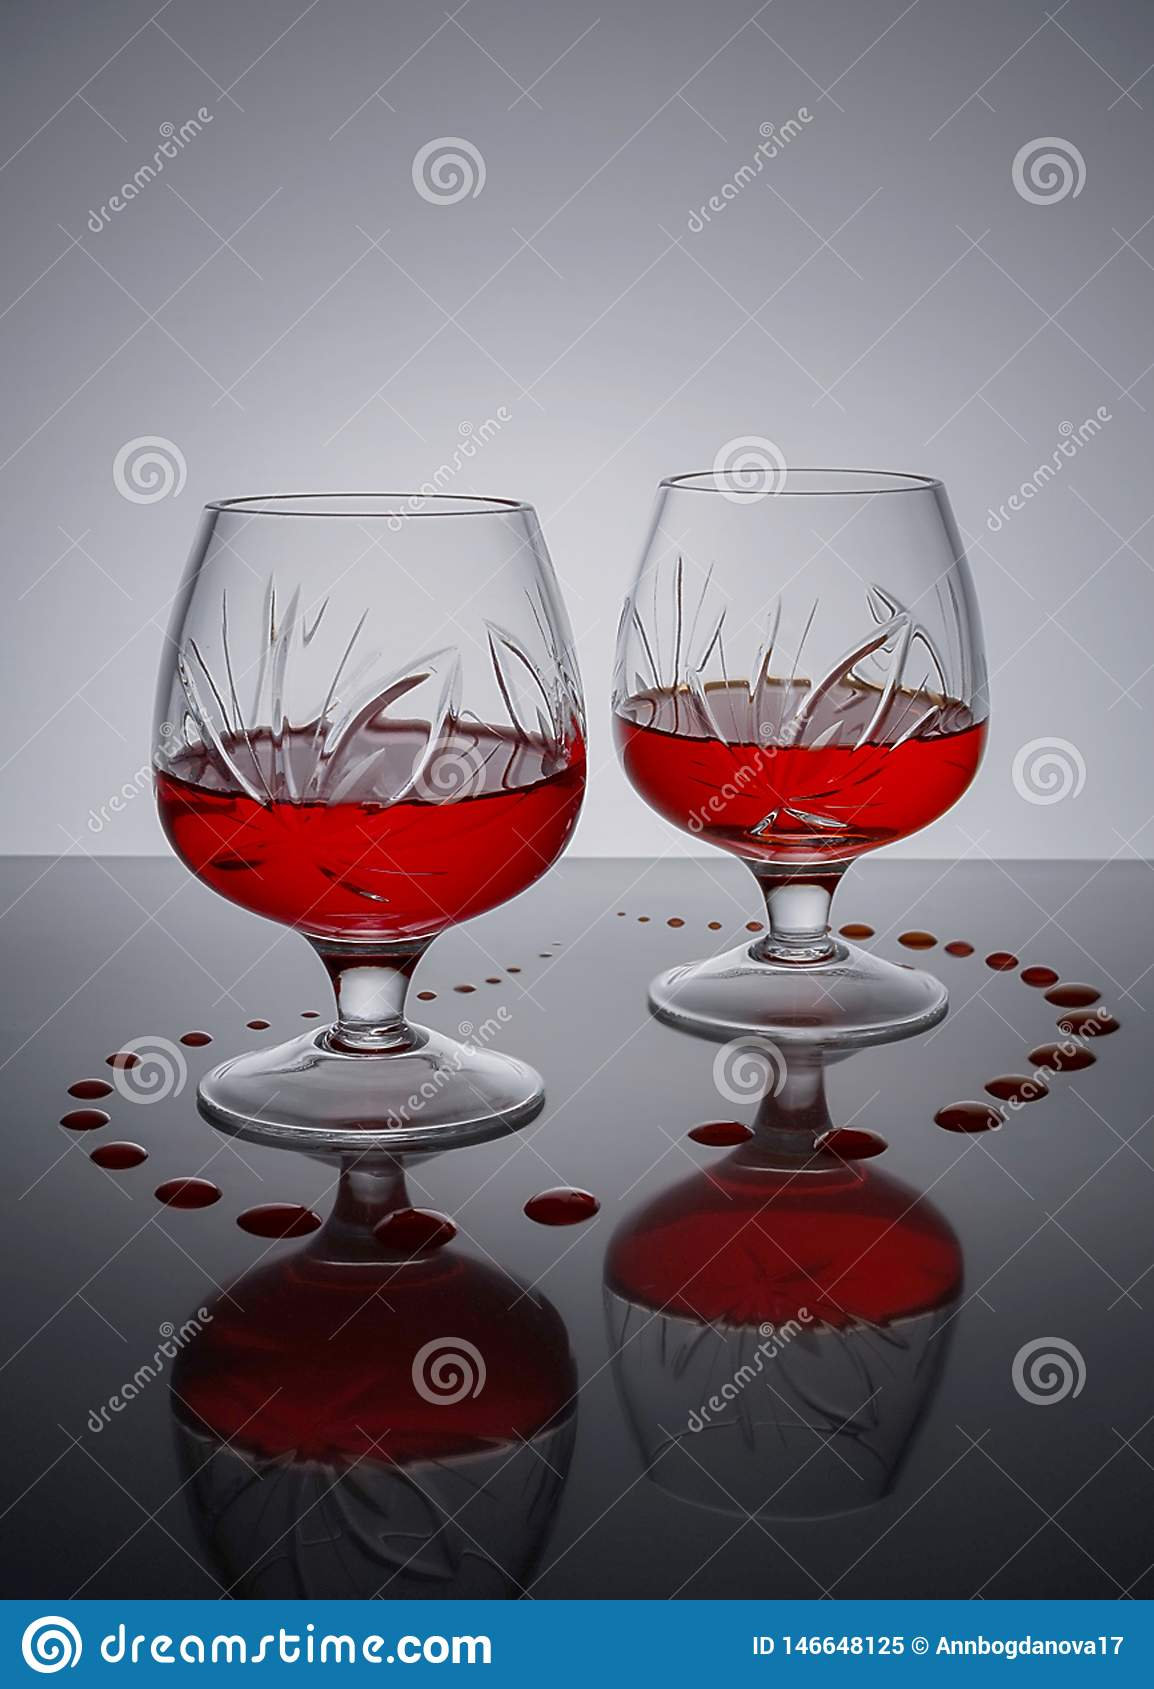 Two glasses of red wine on a plastic surface